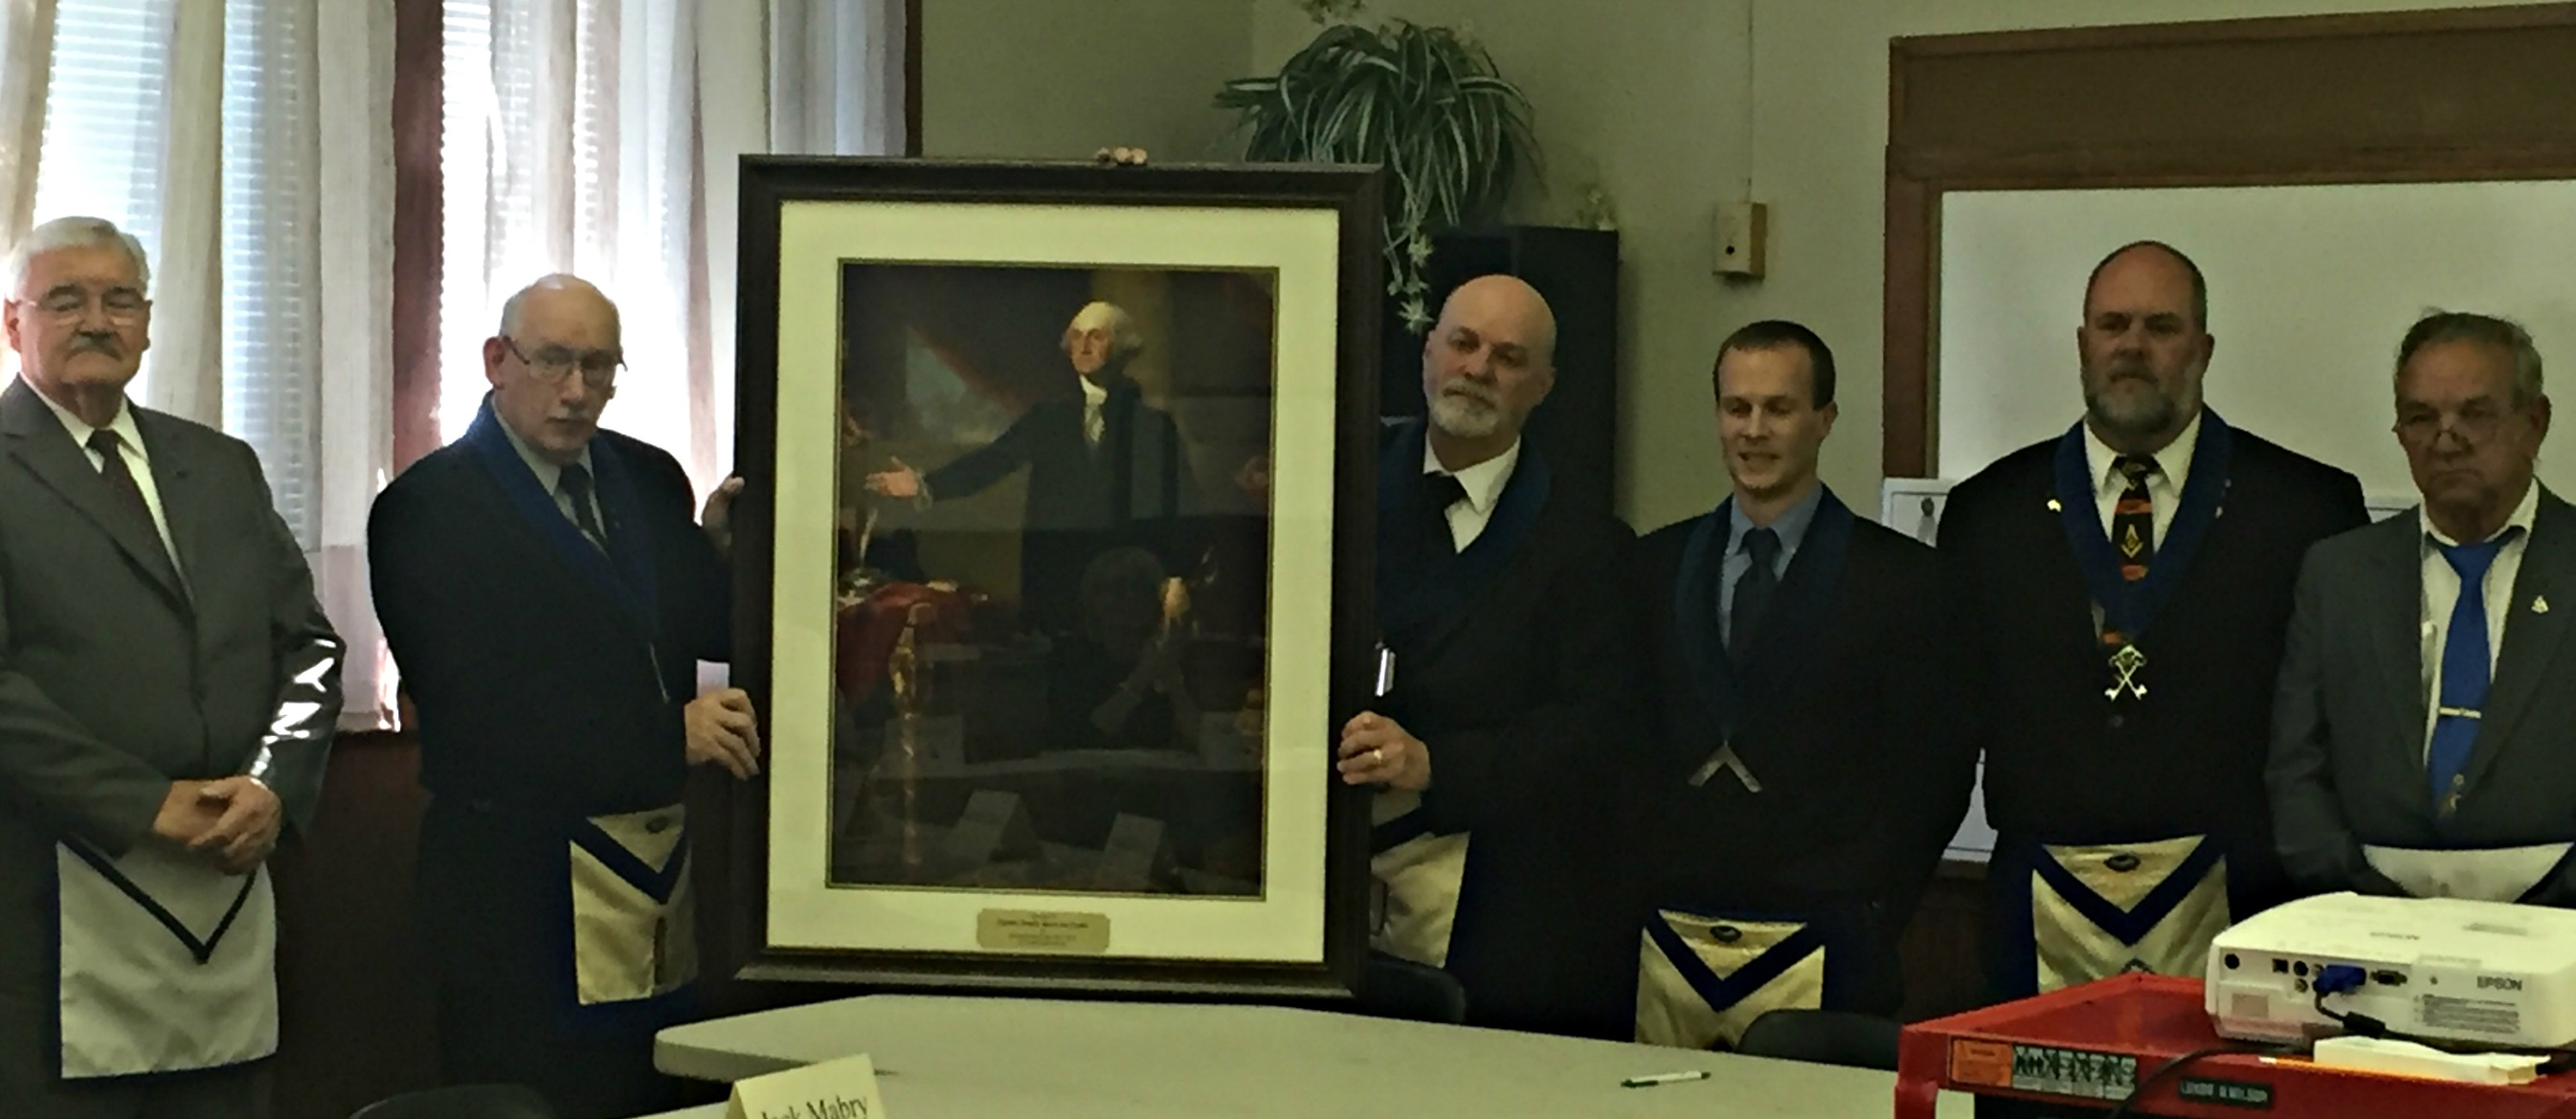 Boiling Springs Masonic Lodge Donate George Washington